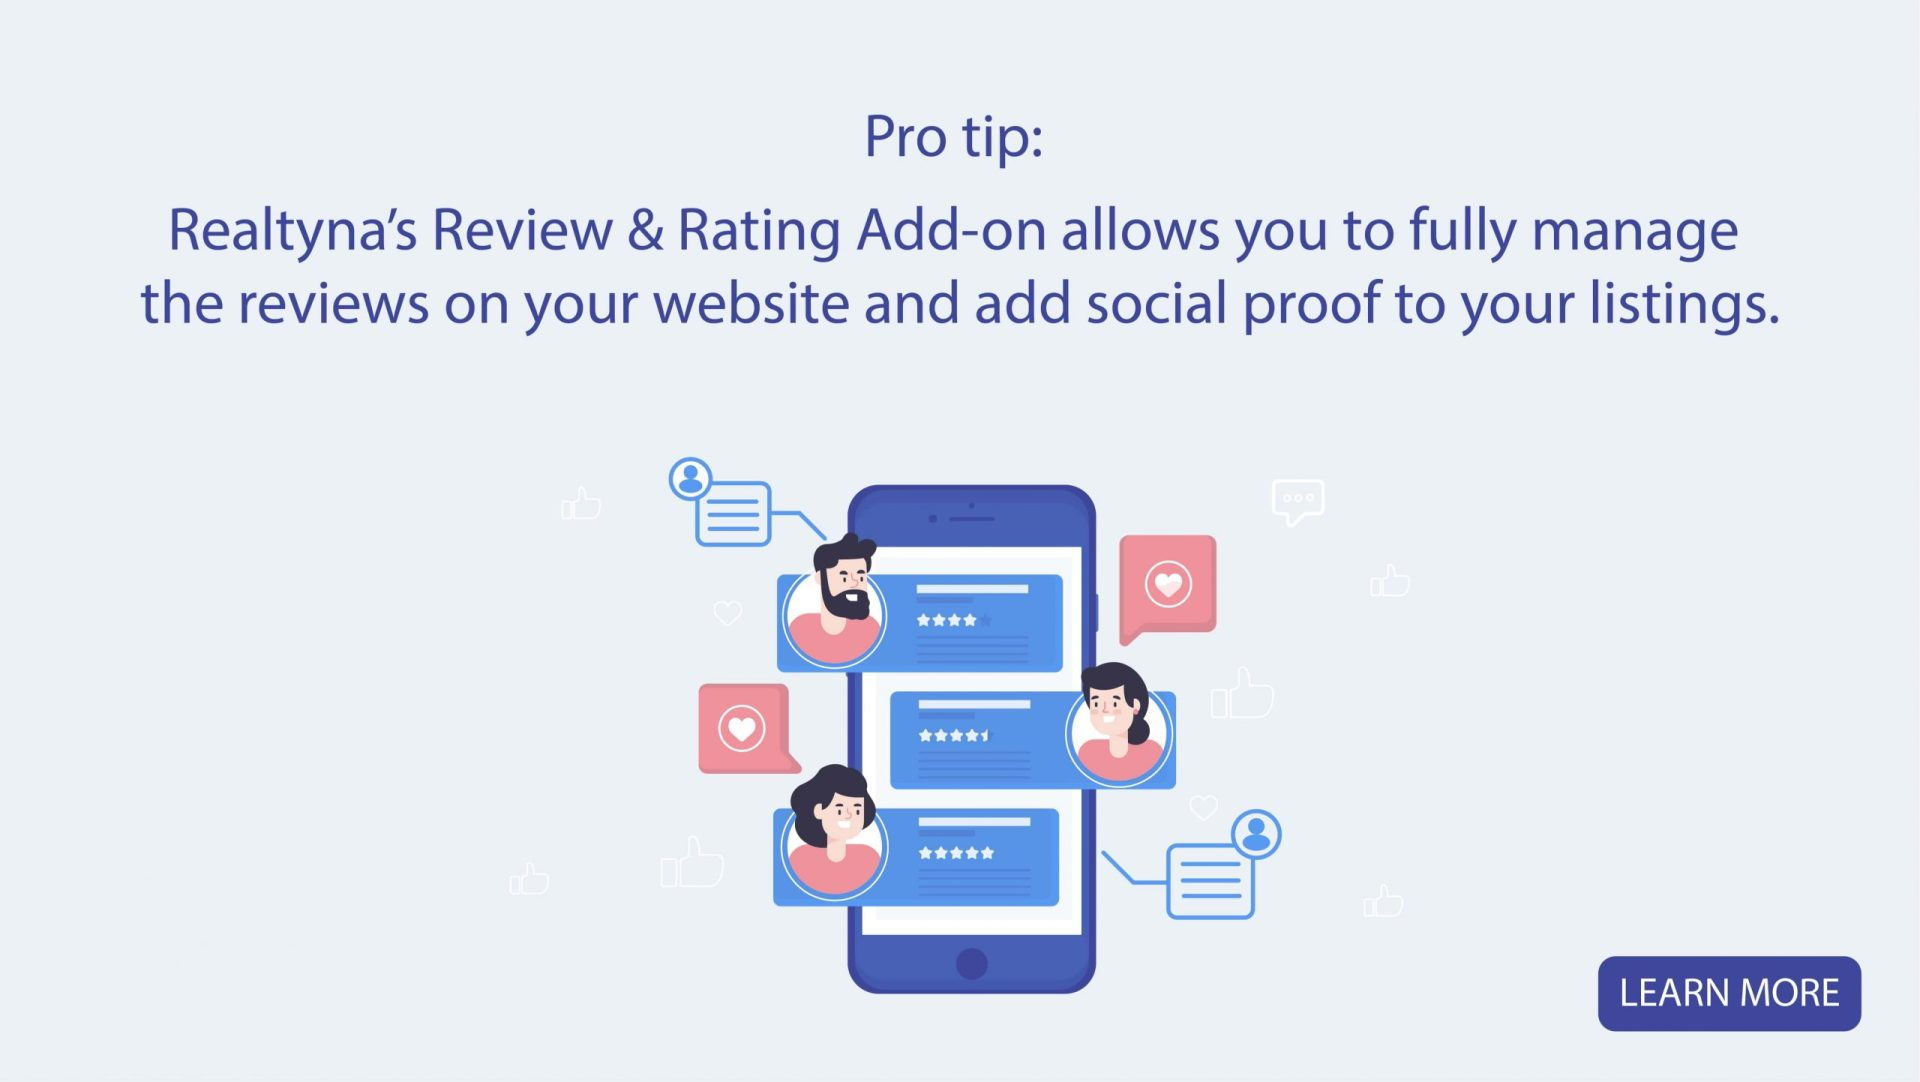 Realtyna's Review and Rating Add-on